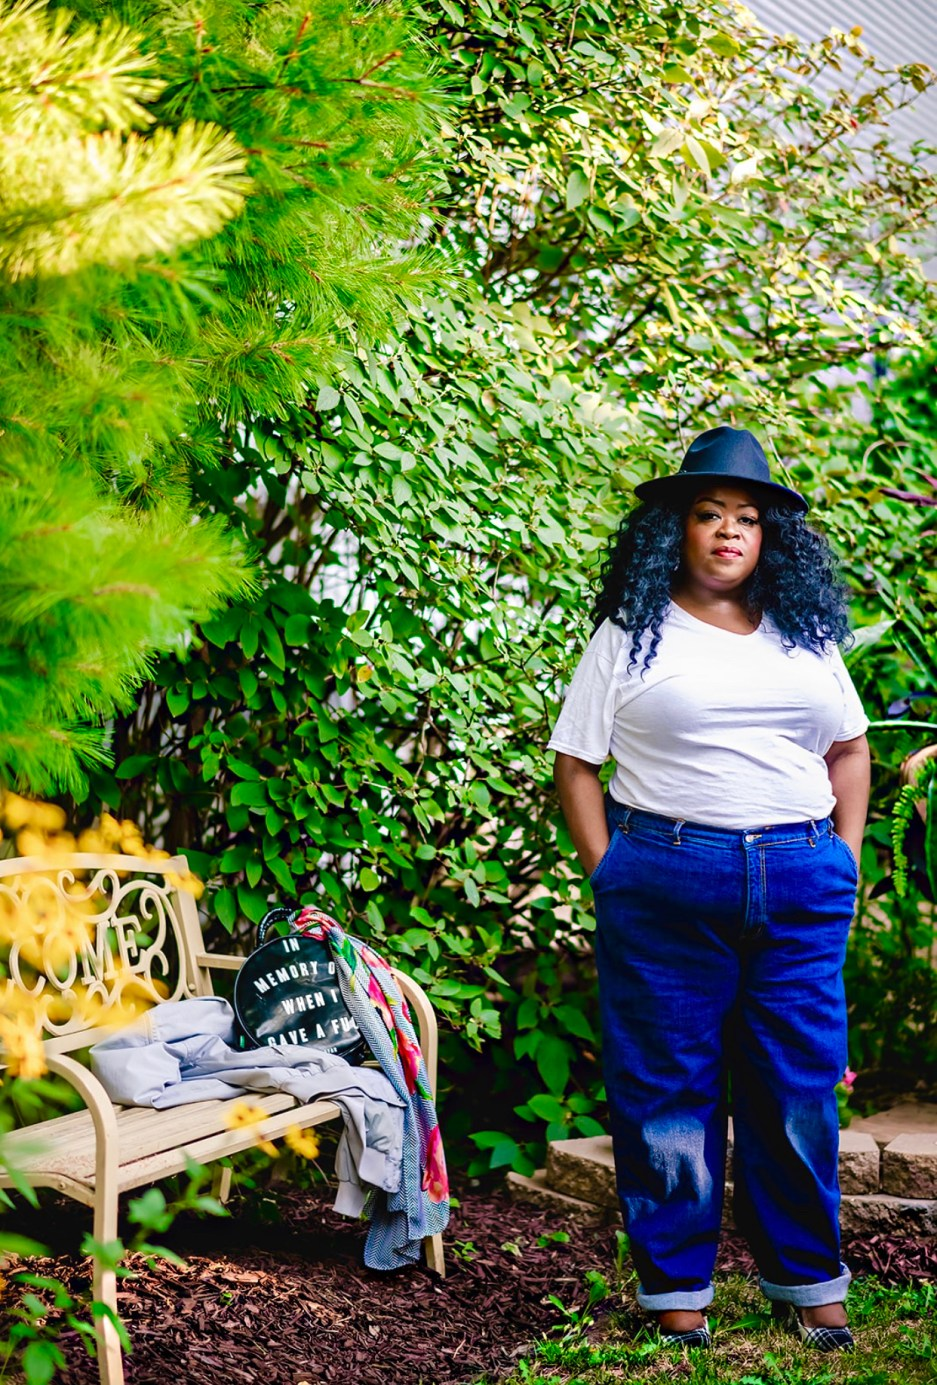 Thrifting While Plus-Size | Menswear, plus-size blogger